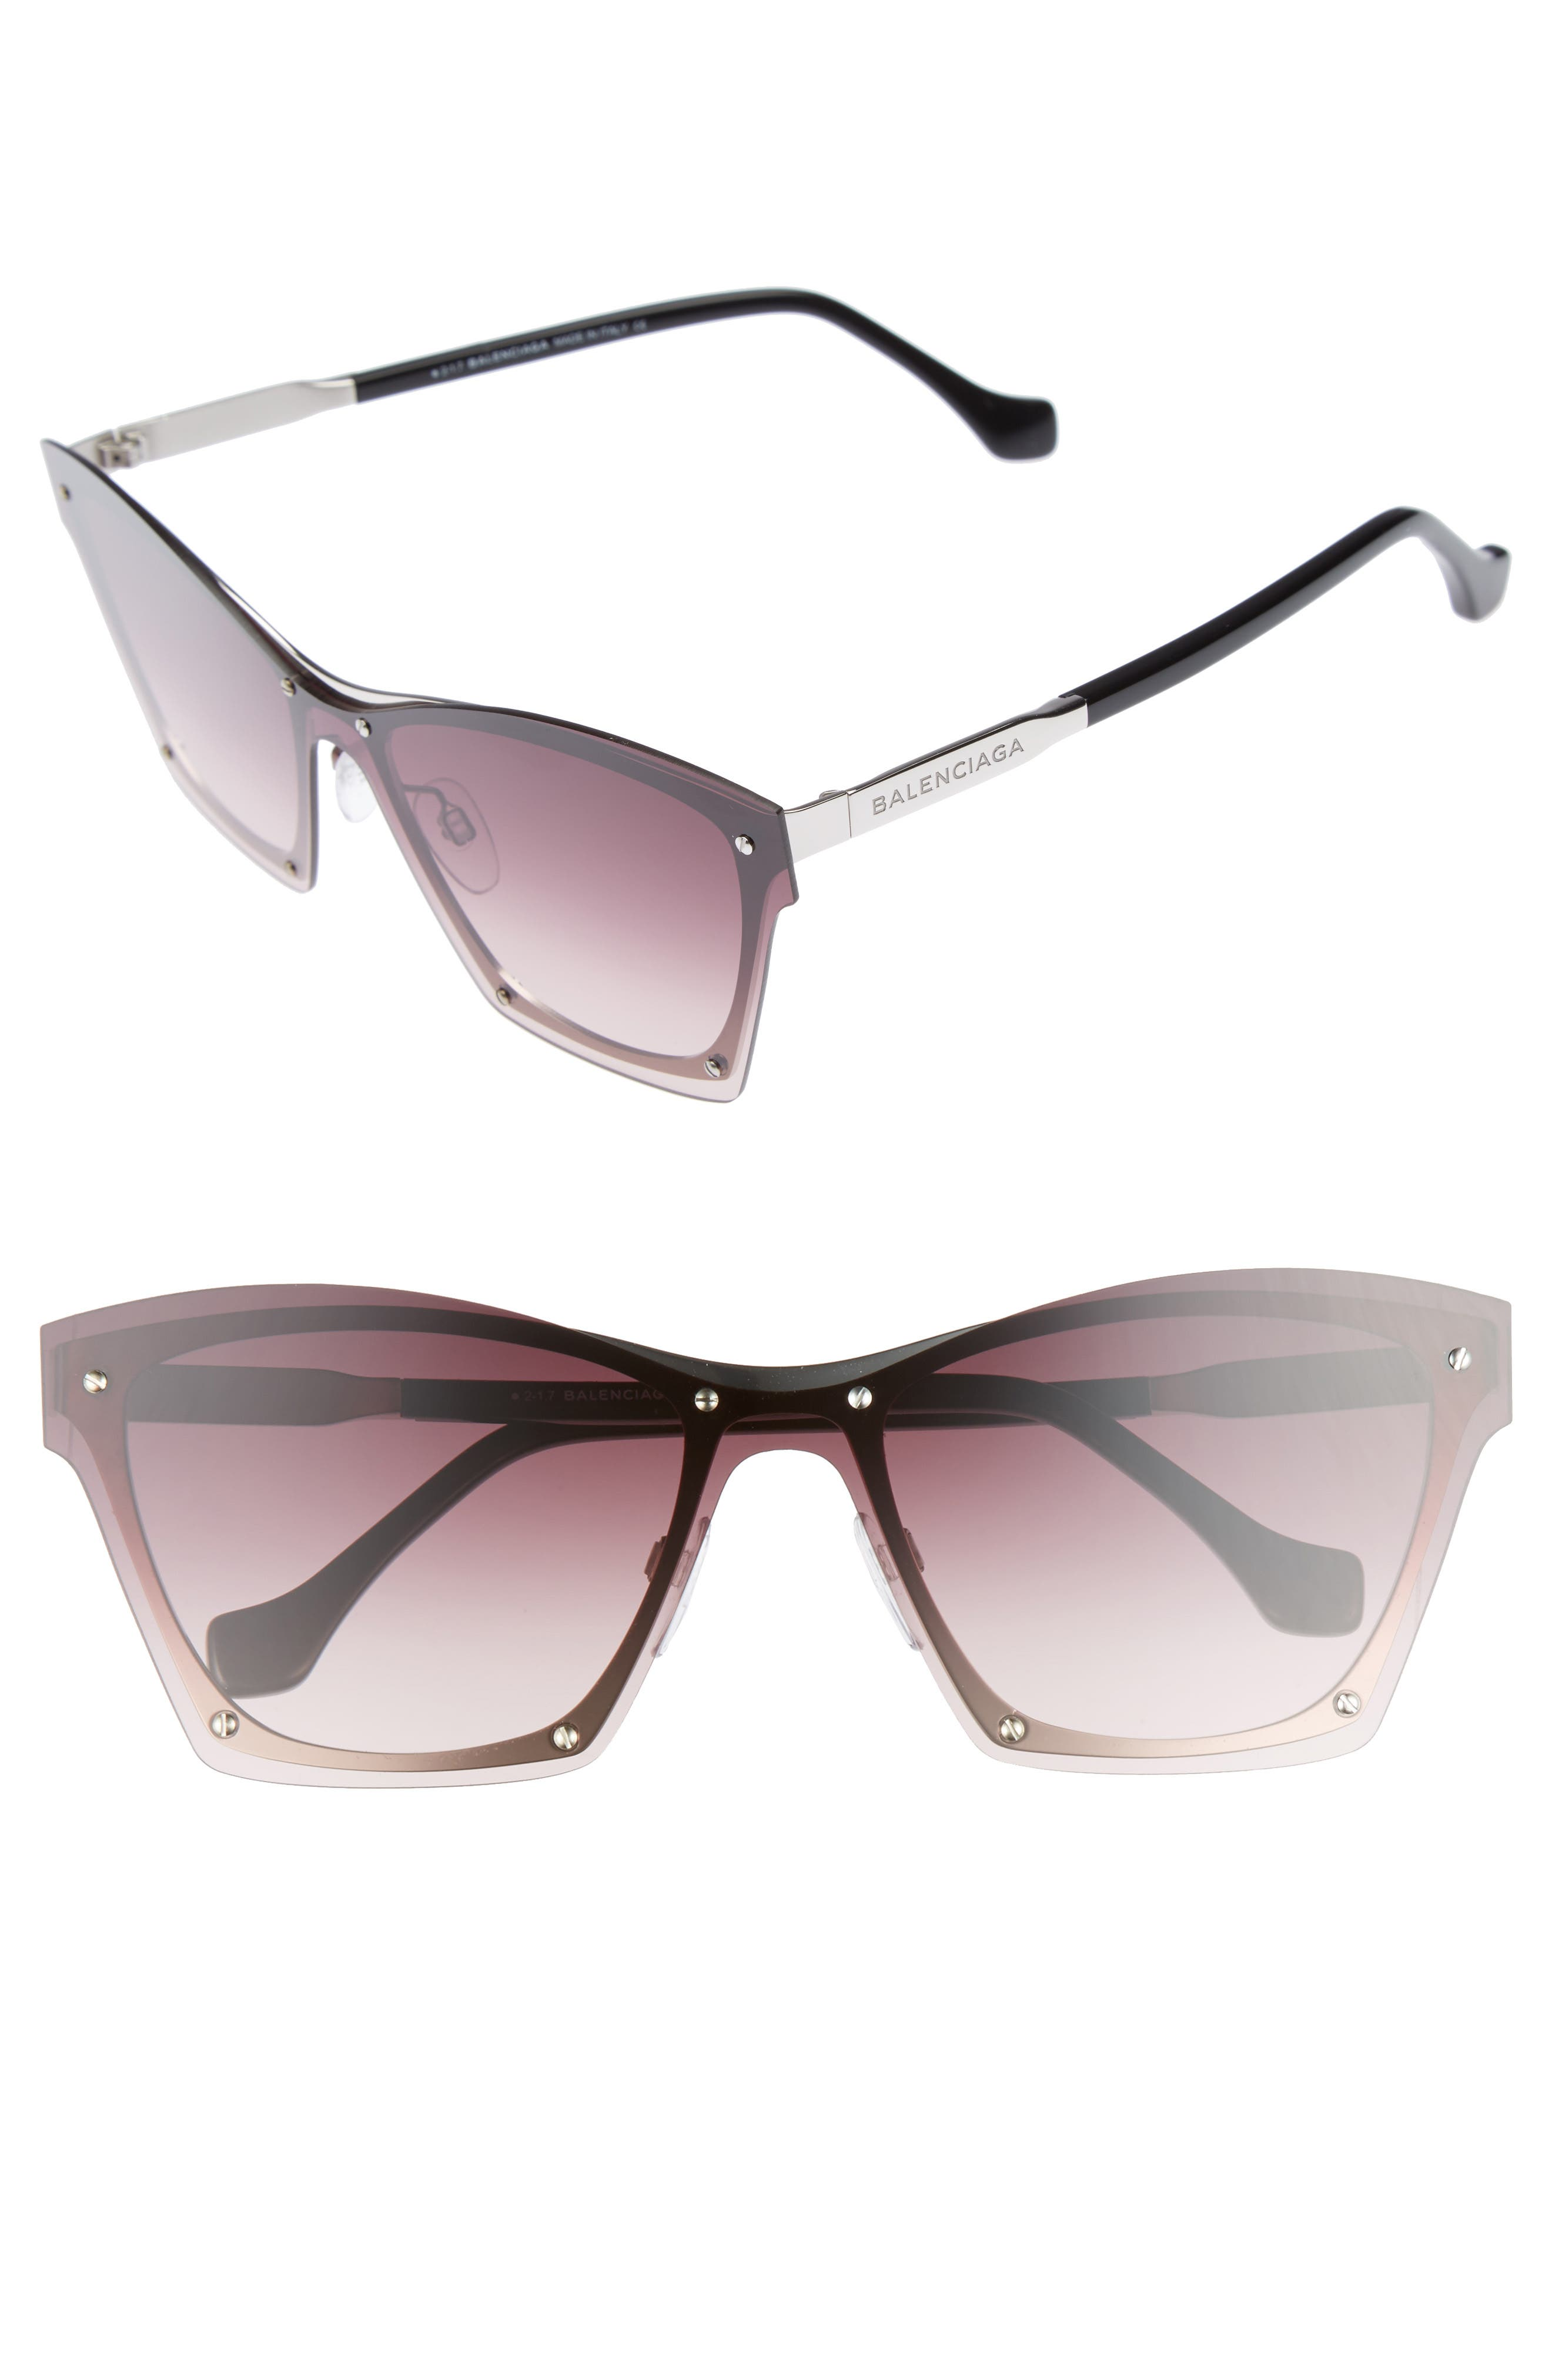 Balenciaga 55mm Frameless Sunglasses